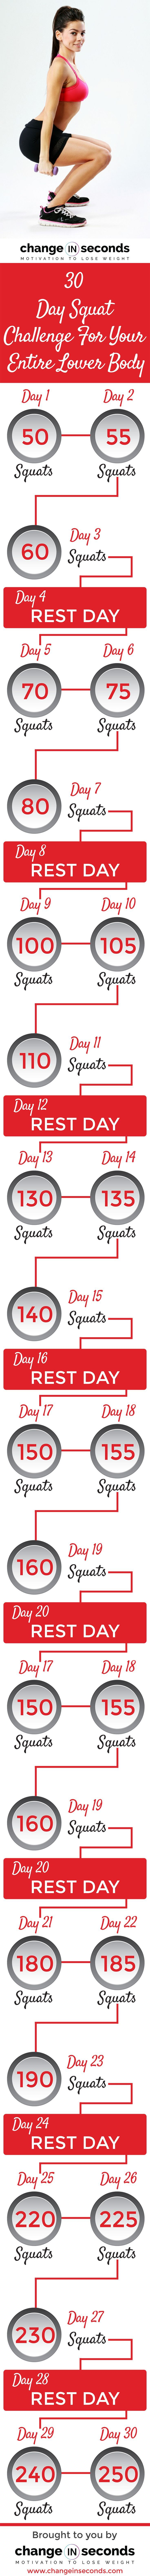 Fitness Motivation : 30 Day Squat Challenge Chart (Download PDF) www.changeinsecon